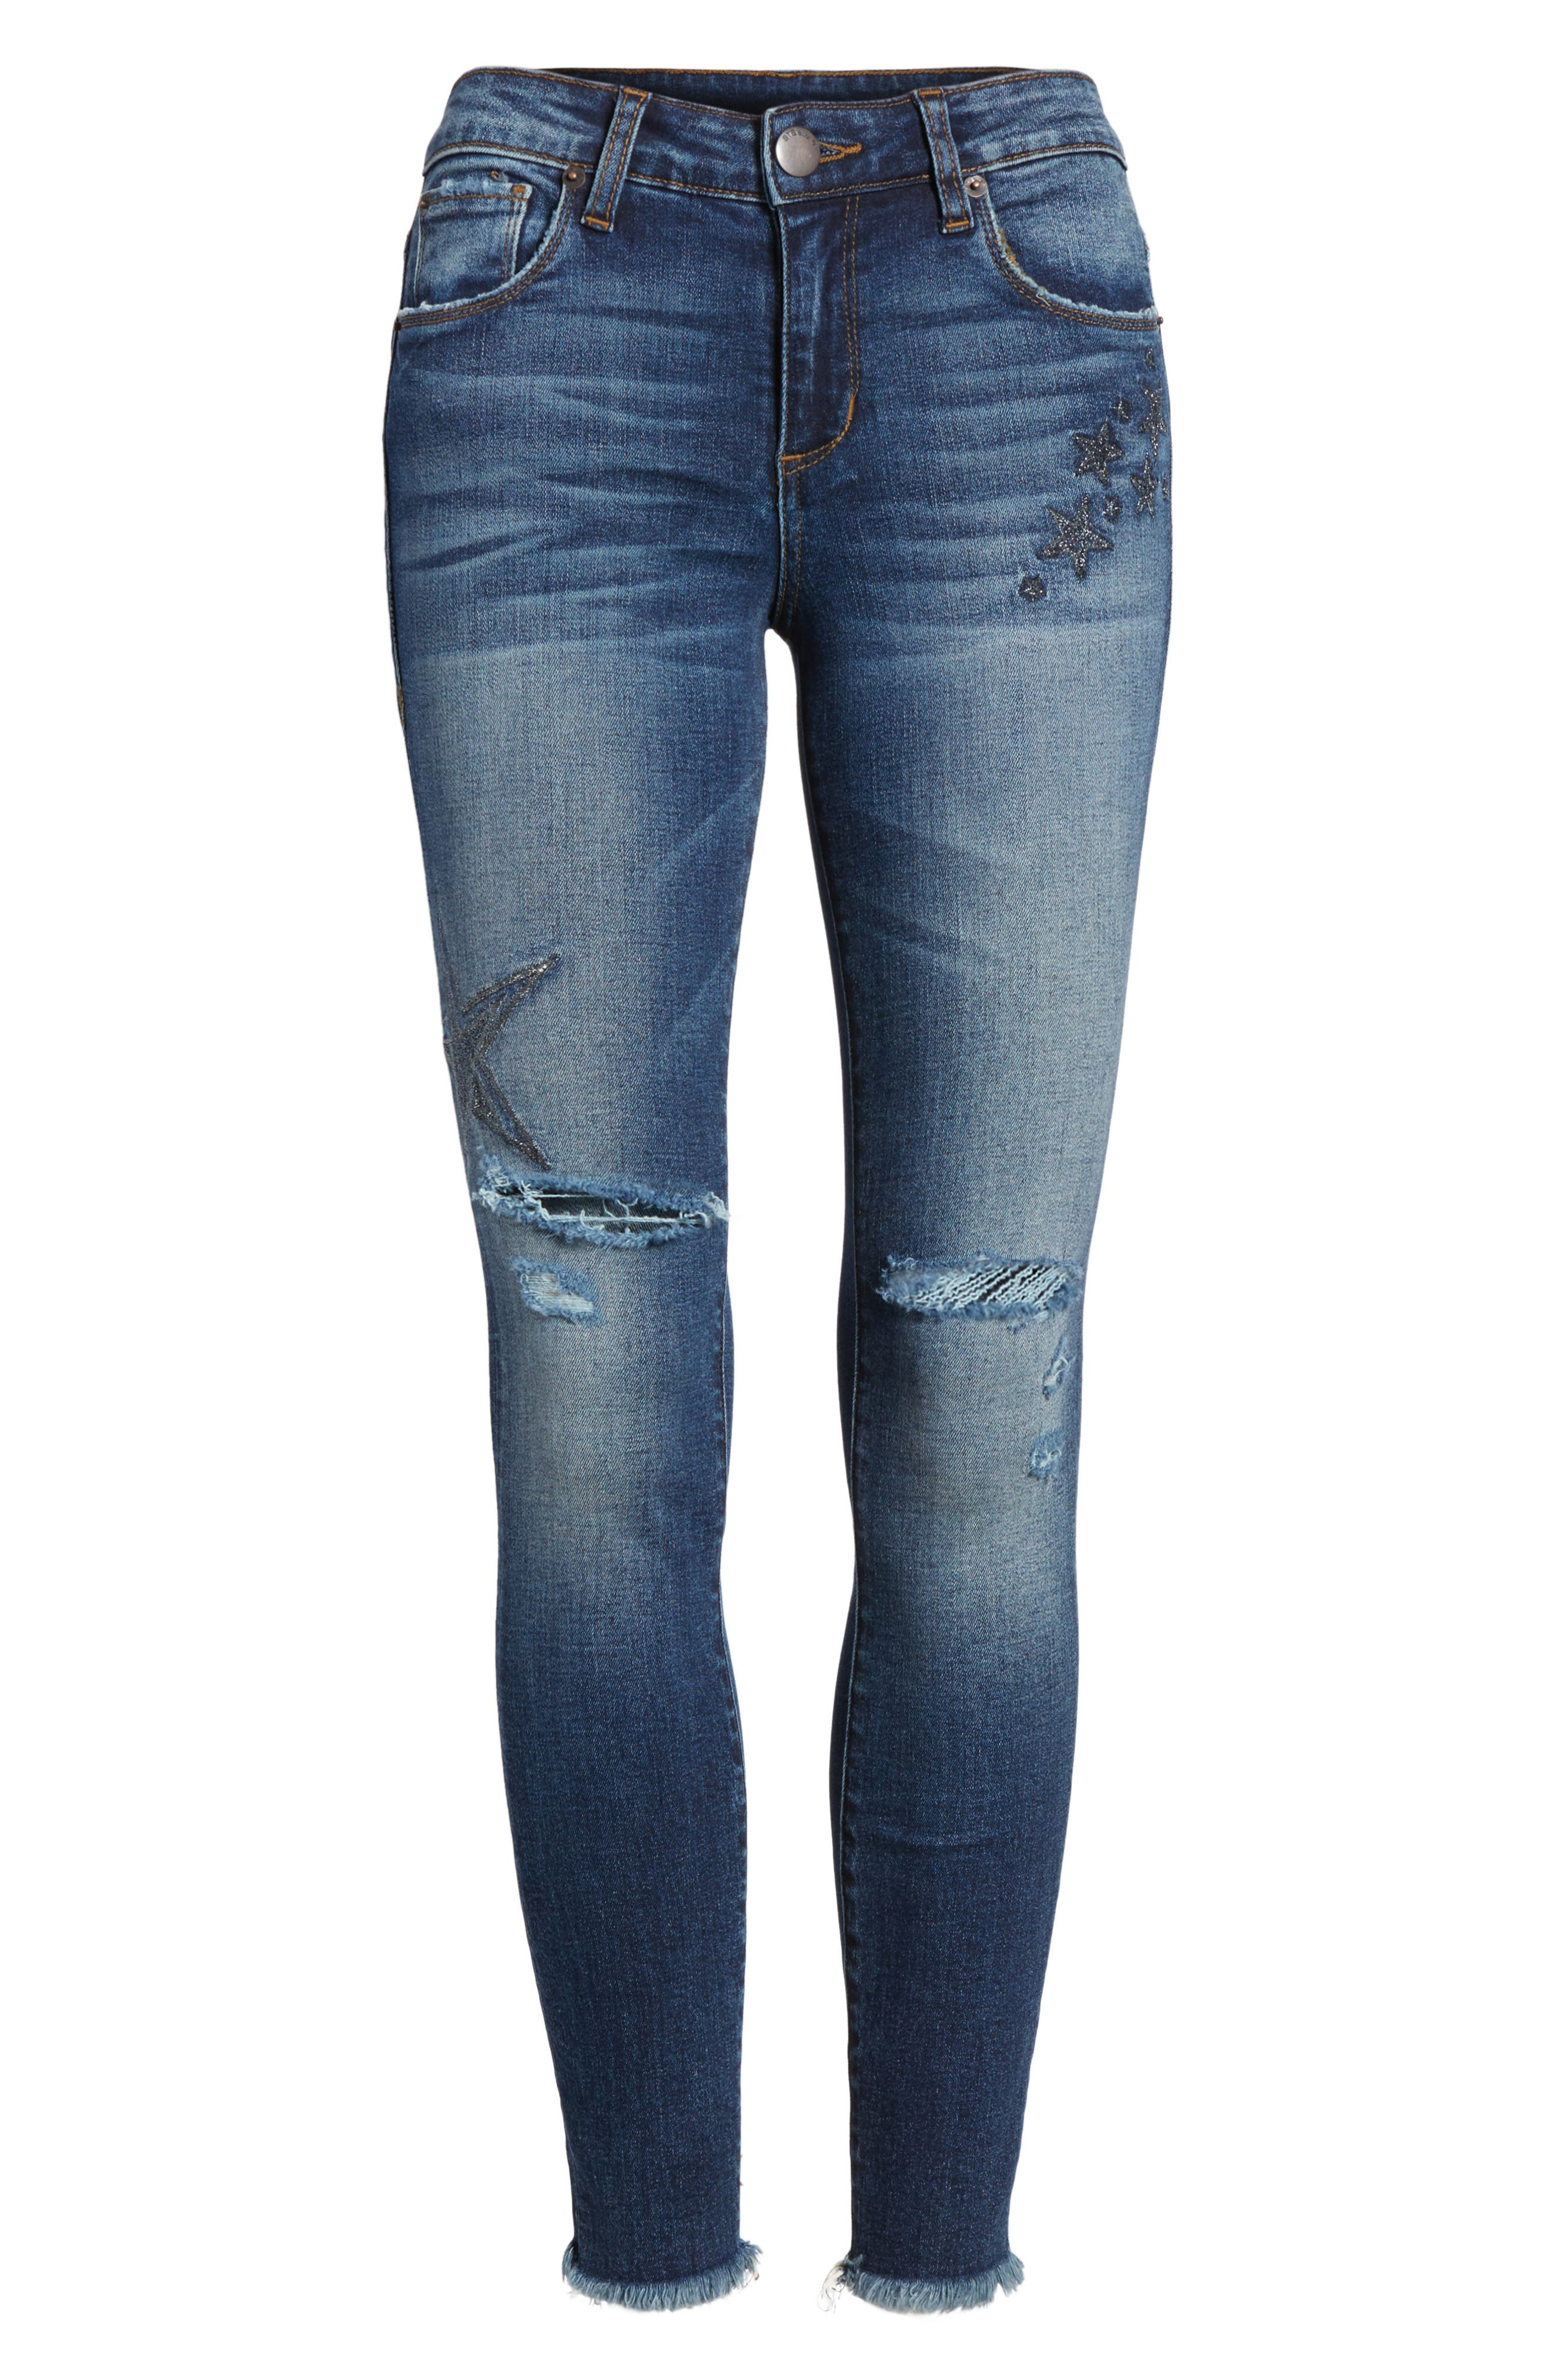 Star Embroiderd Skinny Ankle Jeans,                             Alternate thumbnail 6, color,                             400